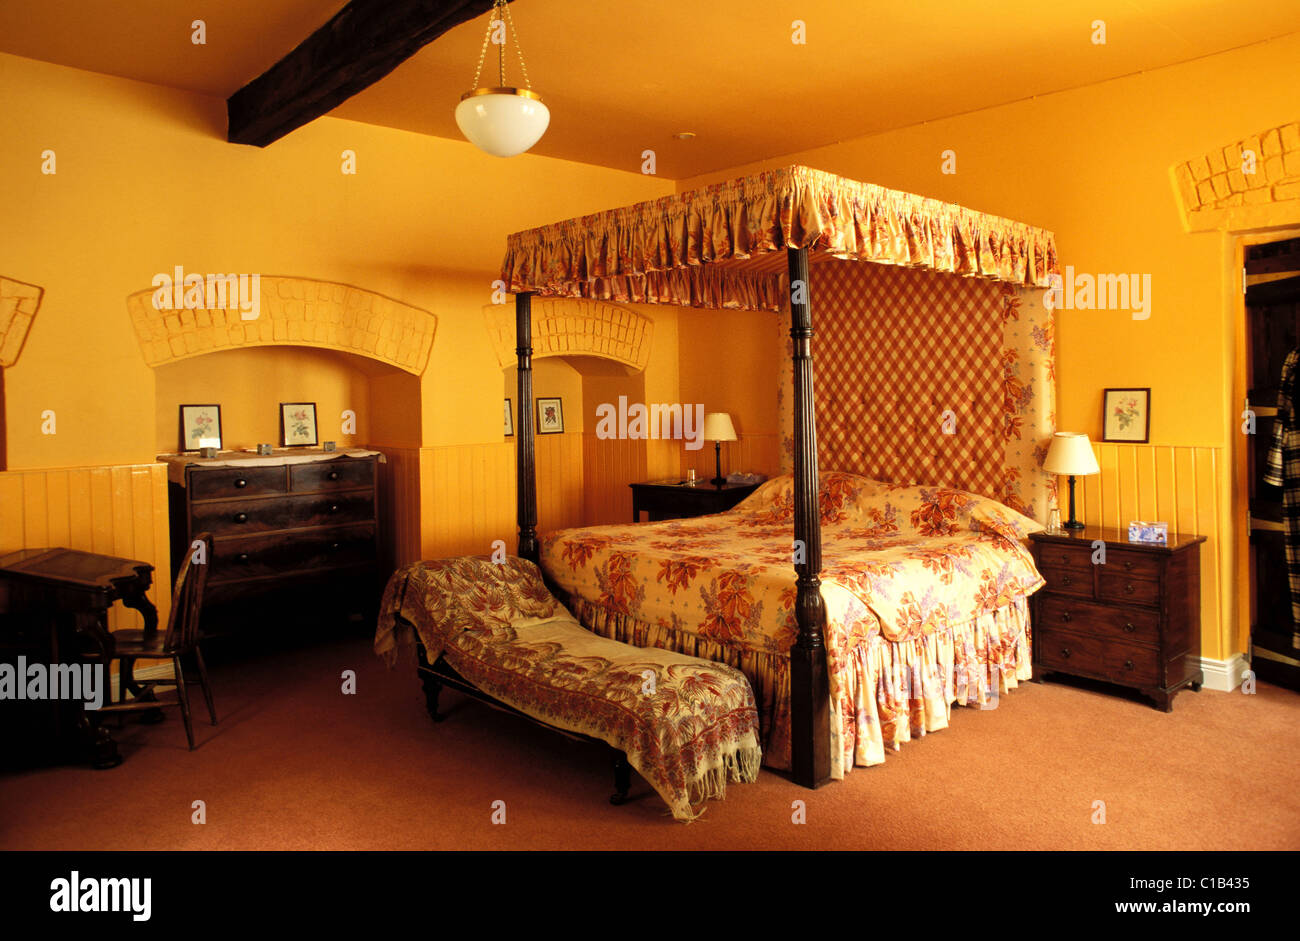 United Kingdom, Ulster, Fermanagh county, charming country manor, Tempo Manor, room with four post bed - Stock Image